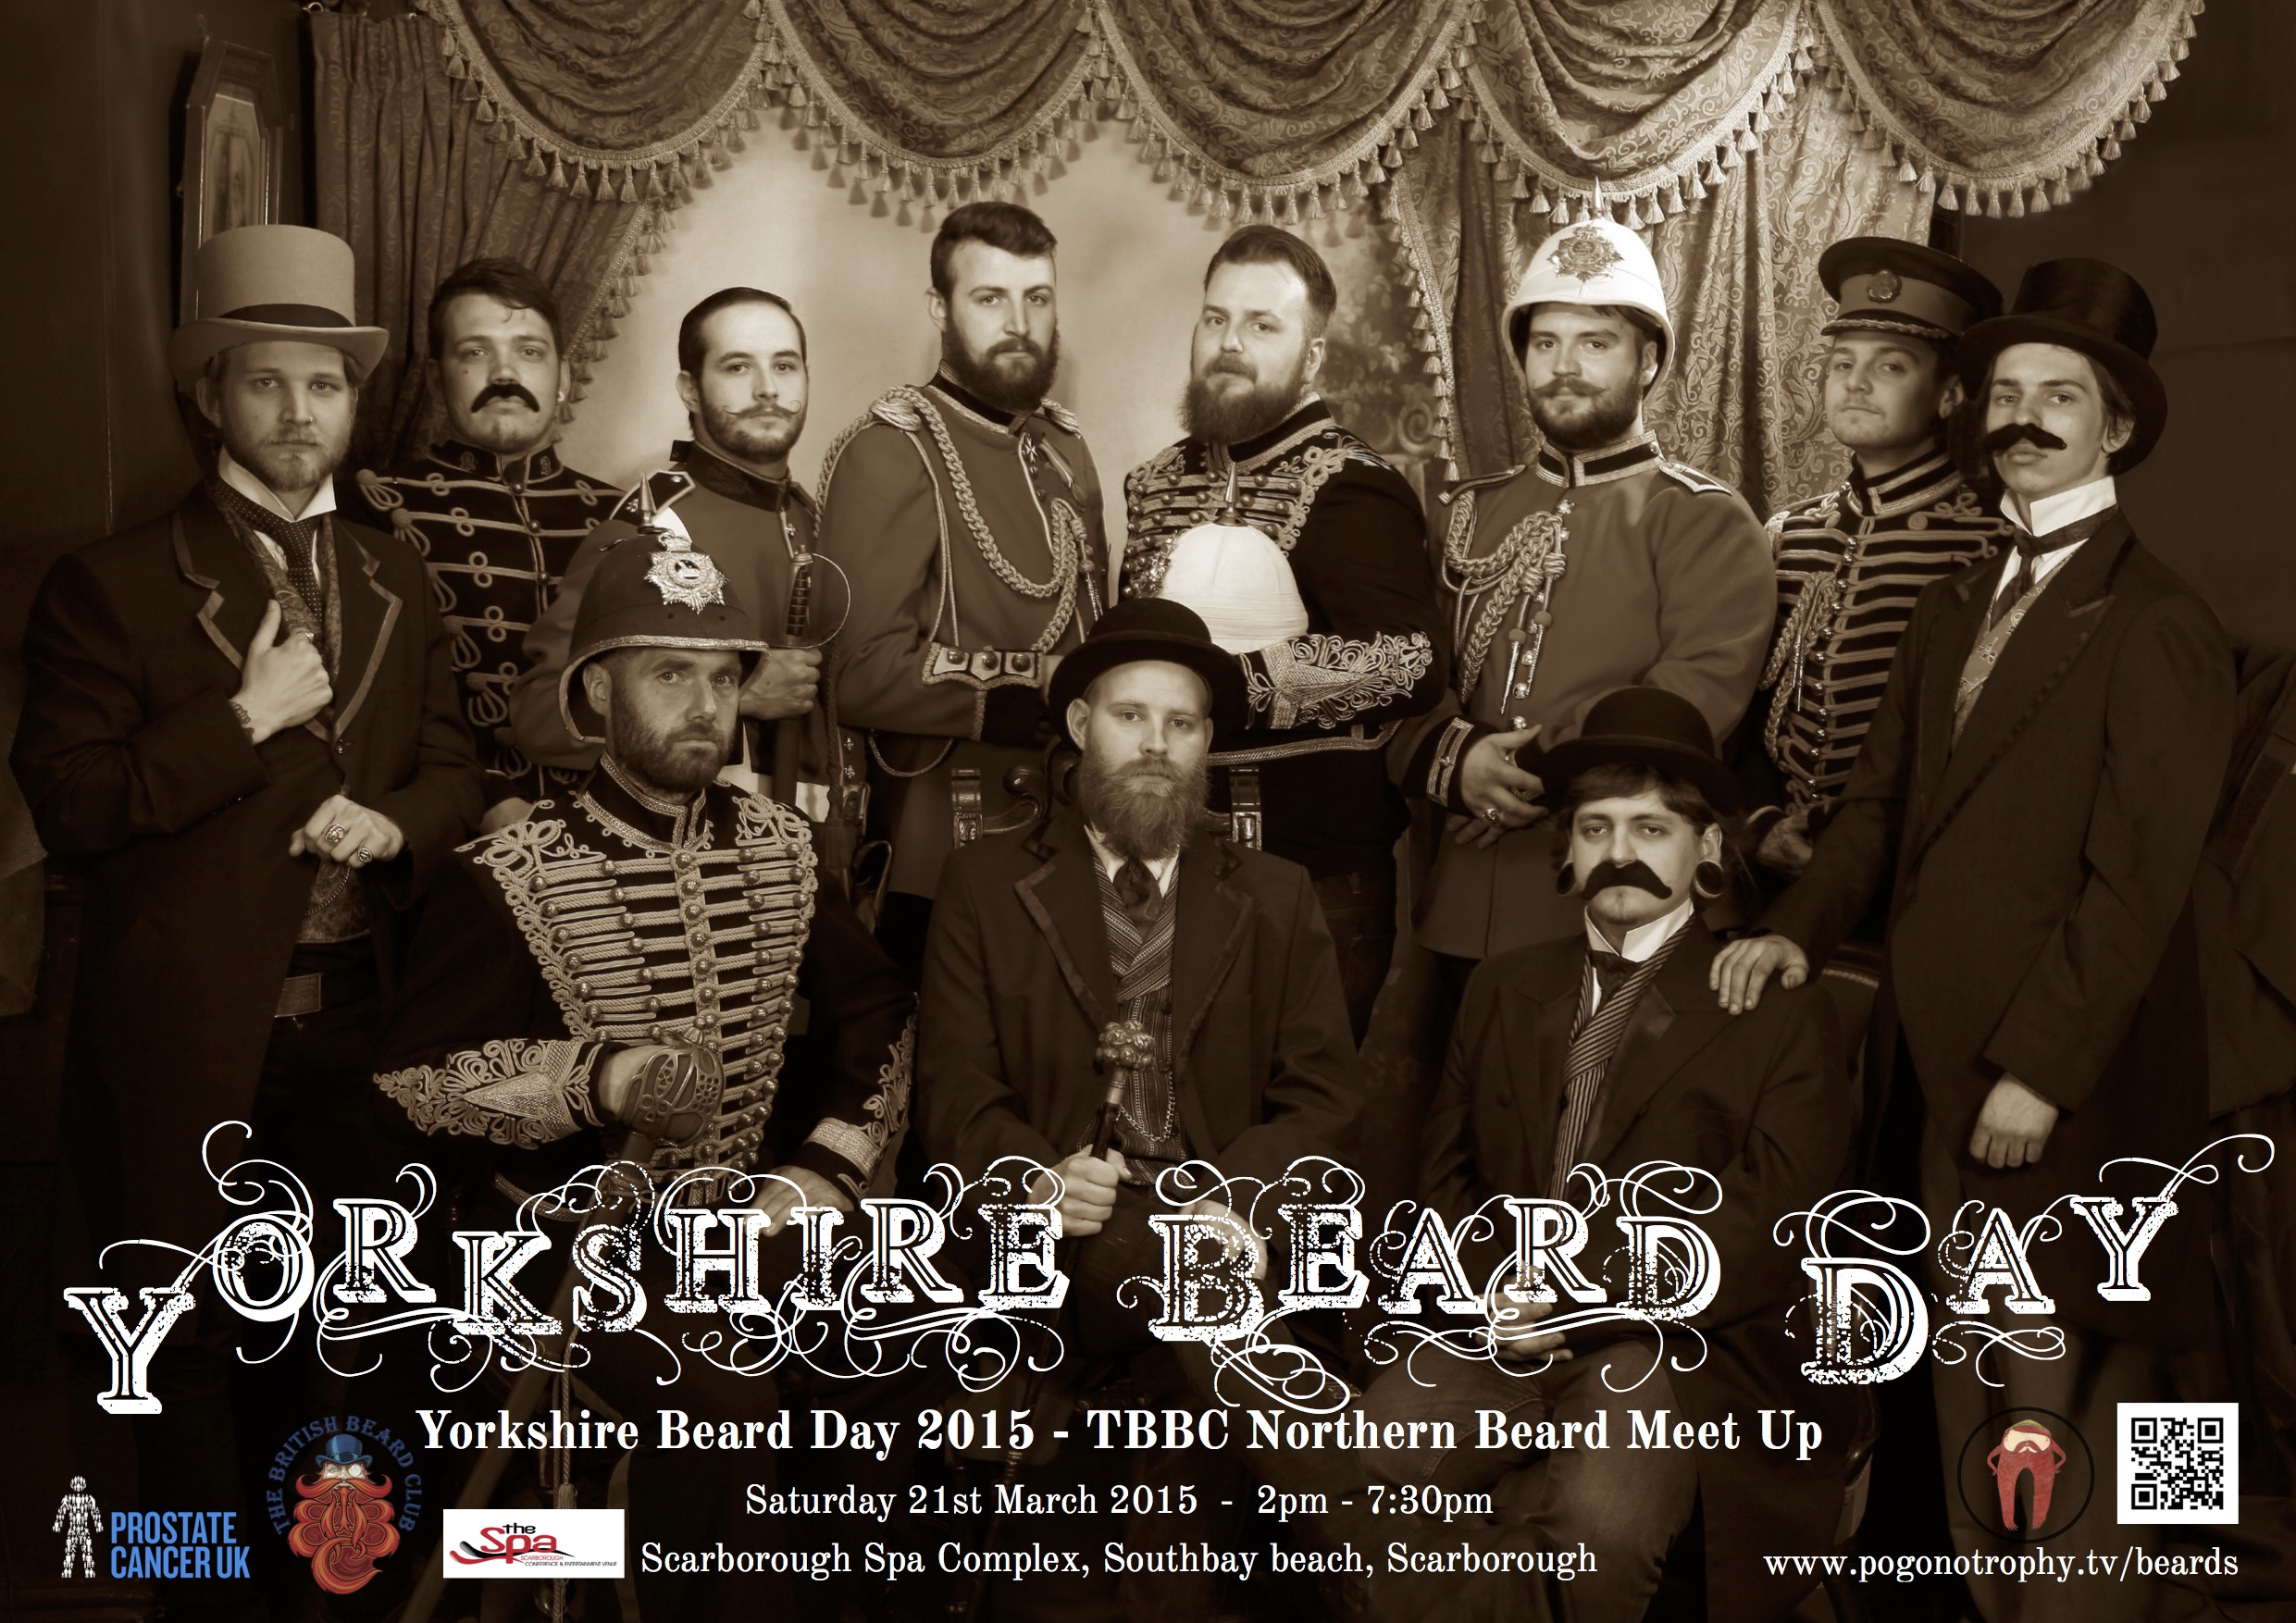 Yorkshire Beard Day 2015 - TBBC Northern Beard Meet Up - Saturday 21st March 2015, Scarborough Spa Complex, Southbay Beach, Scarborough.  Poster by Captain Ants Photography by Past Time Studios of Scarborough, UK.